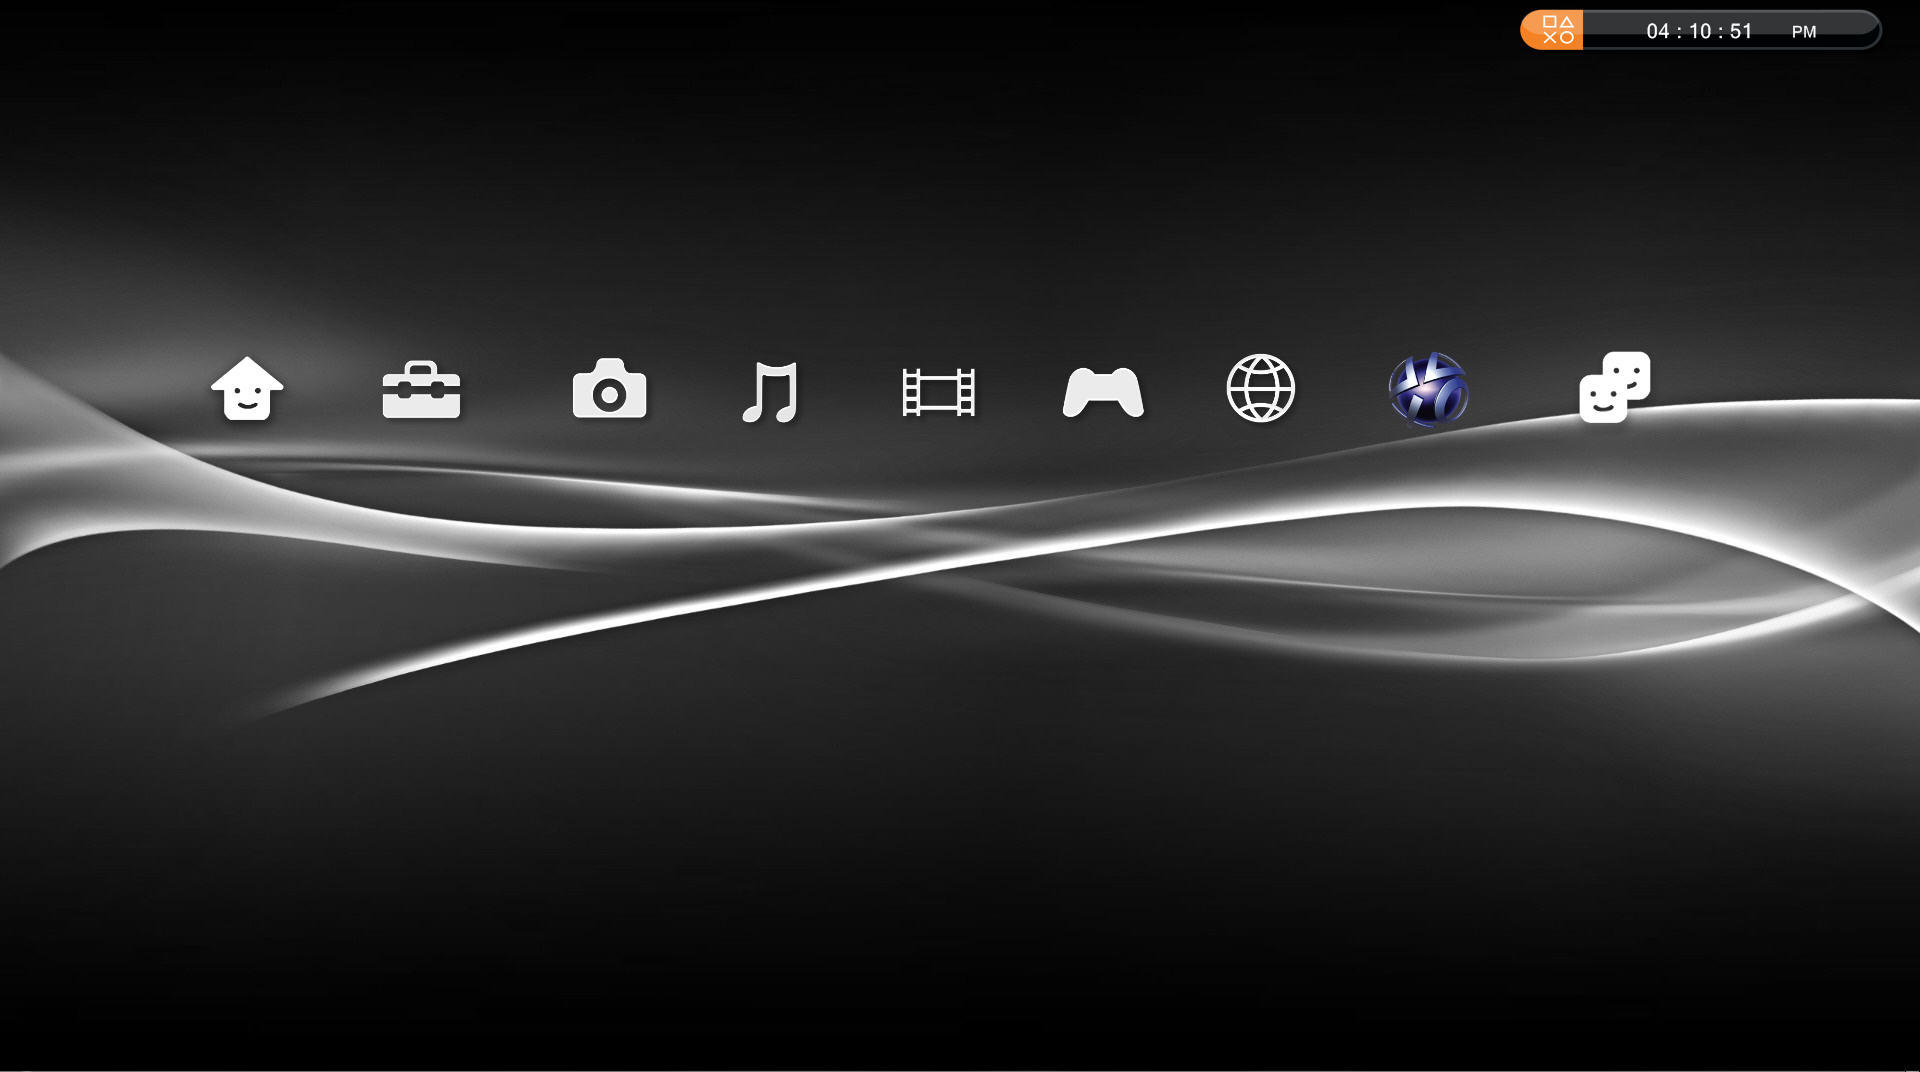 PS3 GUI for your desktop PC by jmr101 on DeviantArt